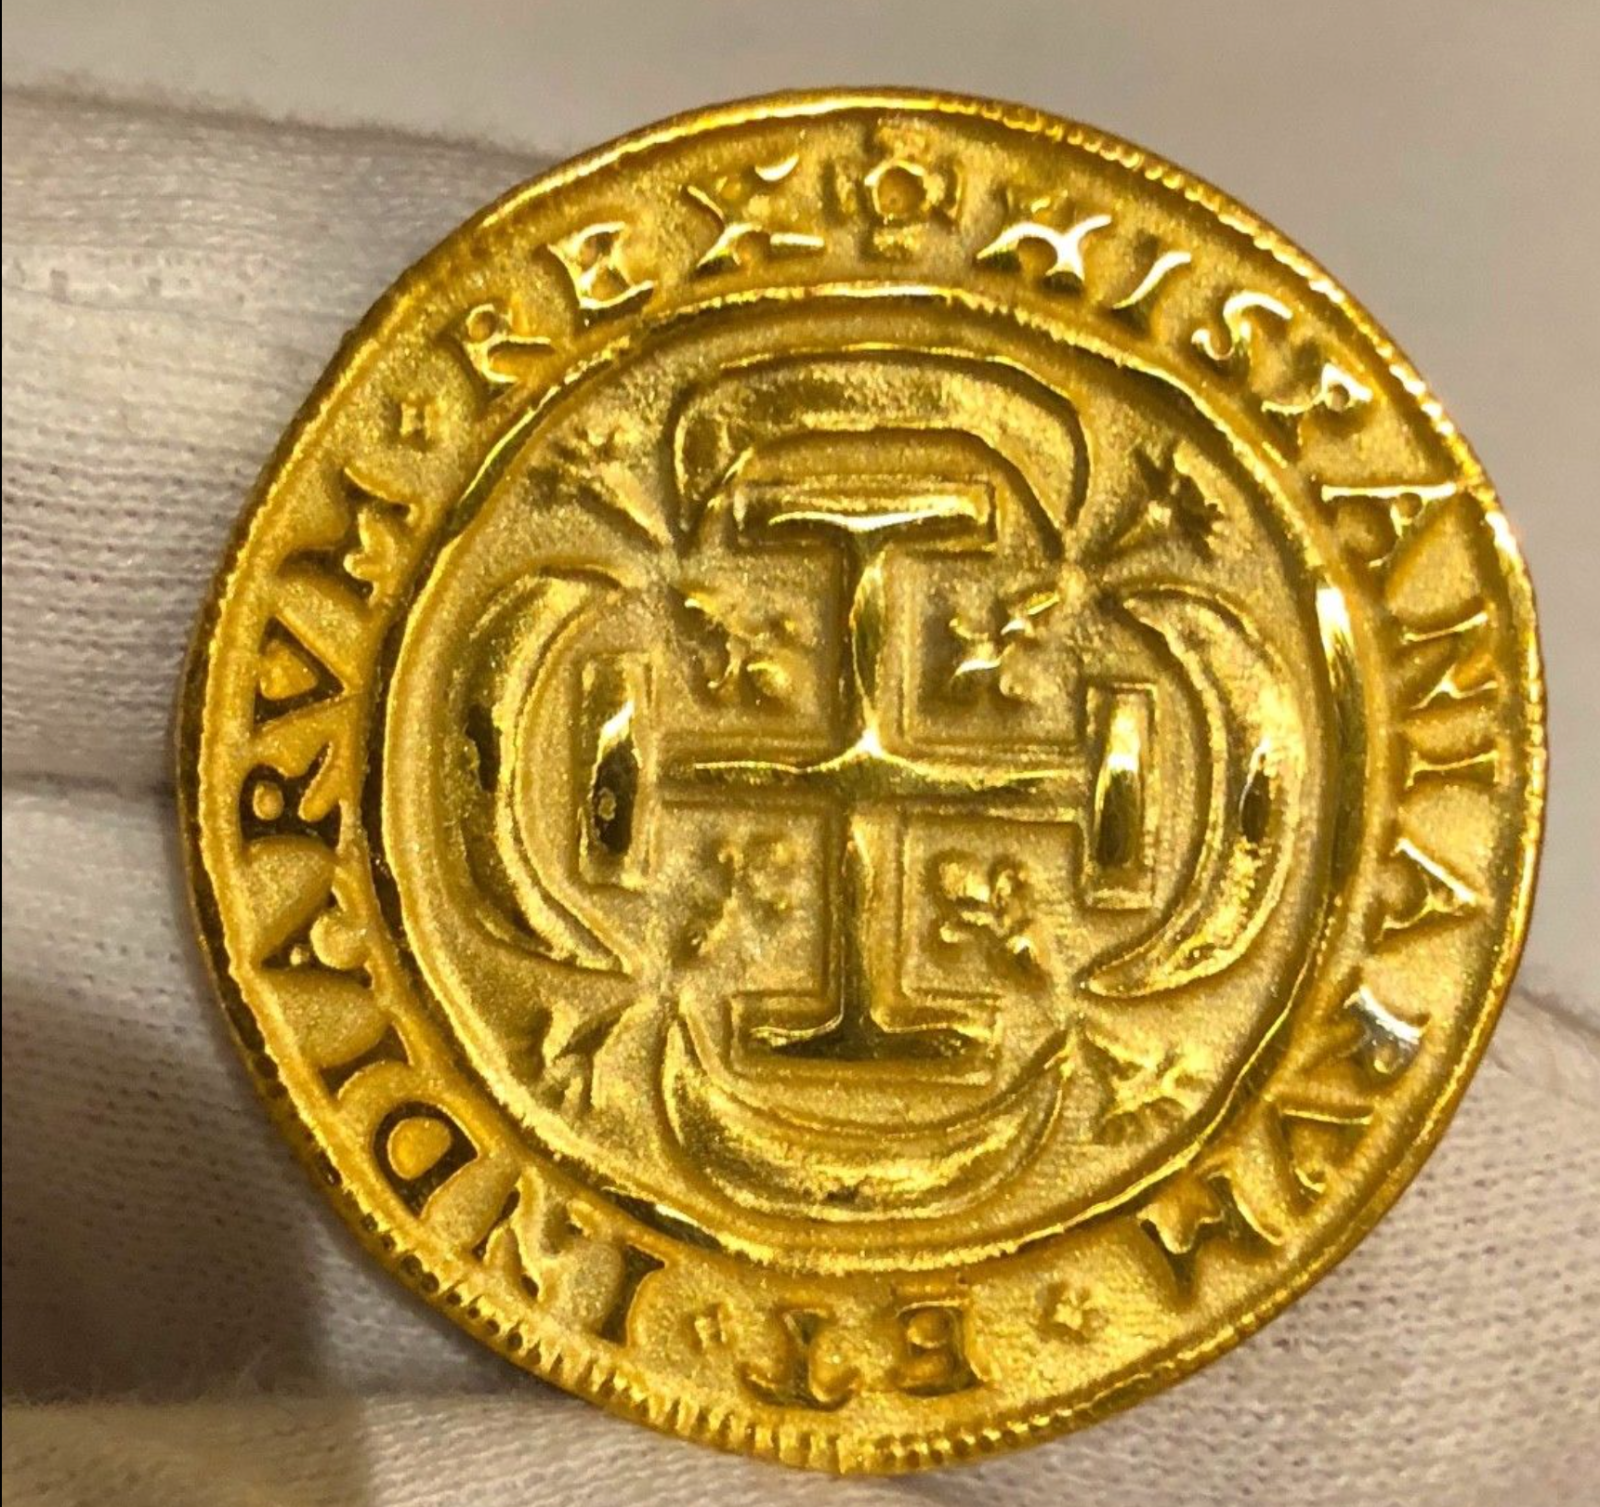 MEXICO REPO 1715 FLEET ROYAL 8 ESCUDOS NGC GOLD PLATED PIRATE TREASURE COIN